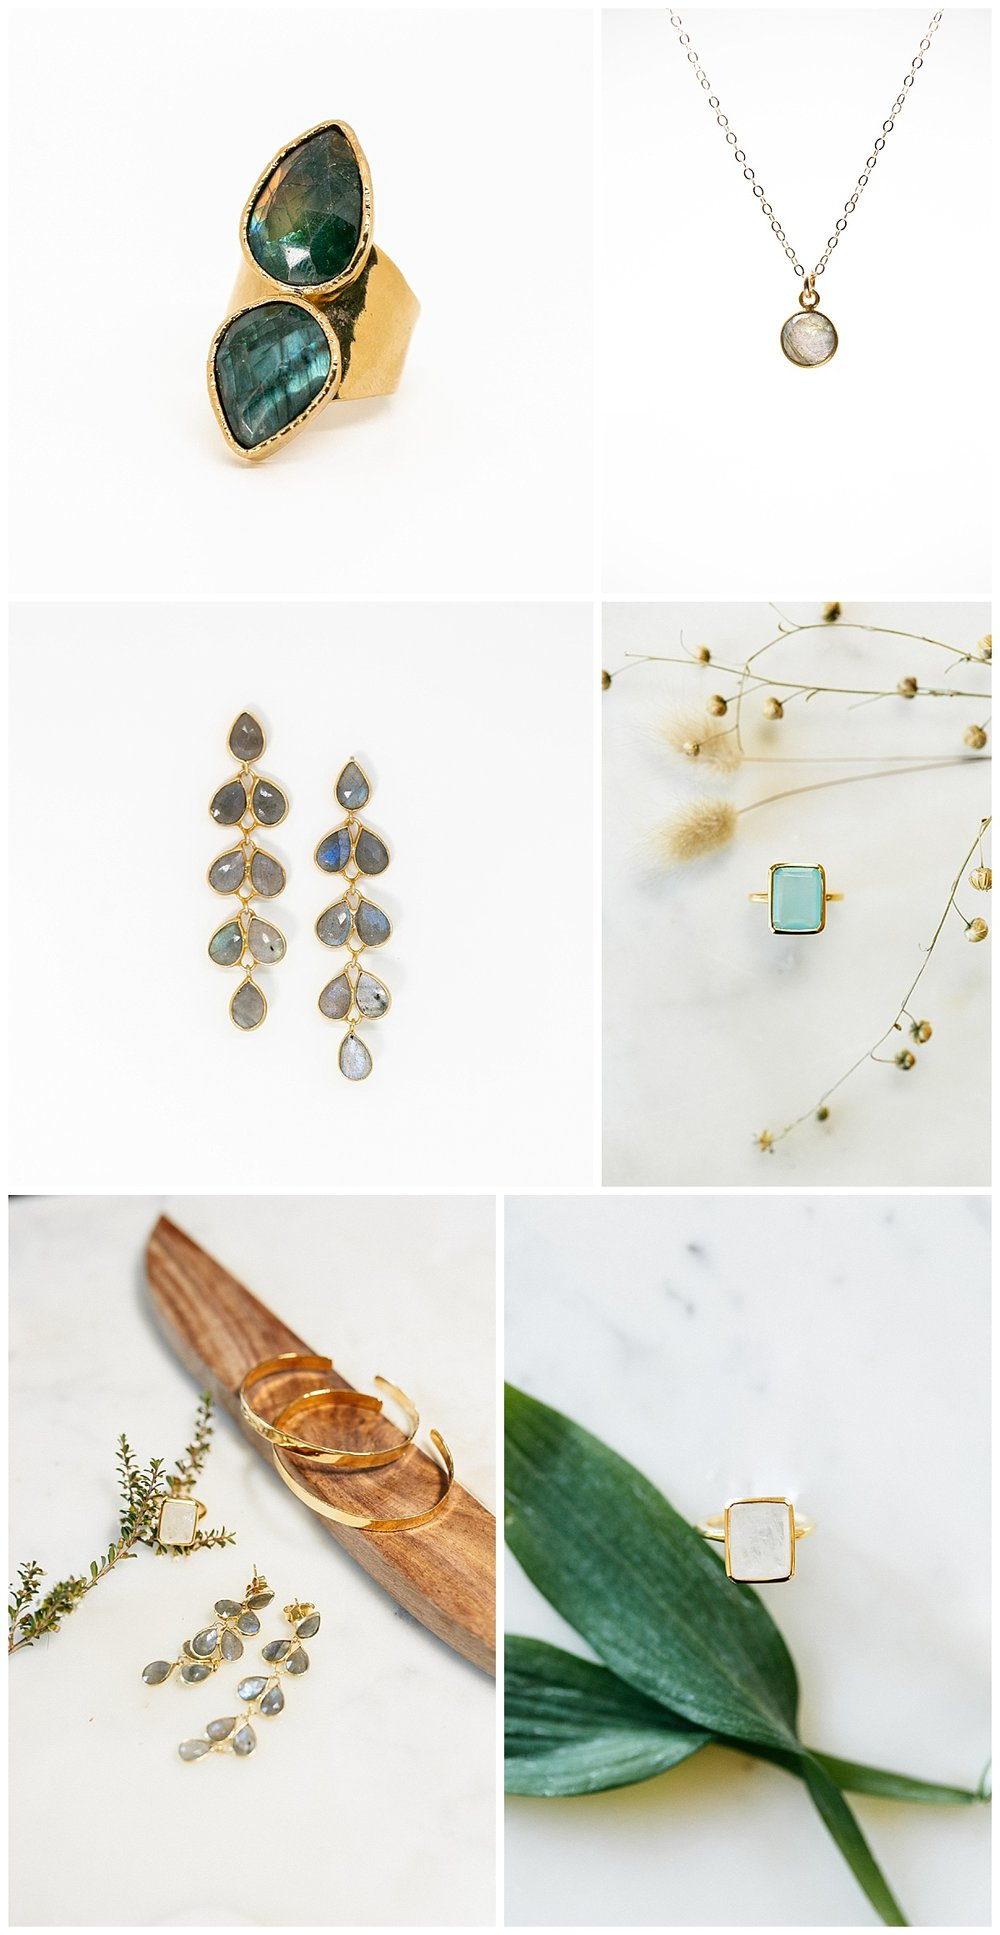 SamErica Studios - branding photography for jewelry - wedding detail shots - wedding jewelry - teal and blue wedding